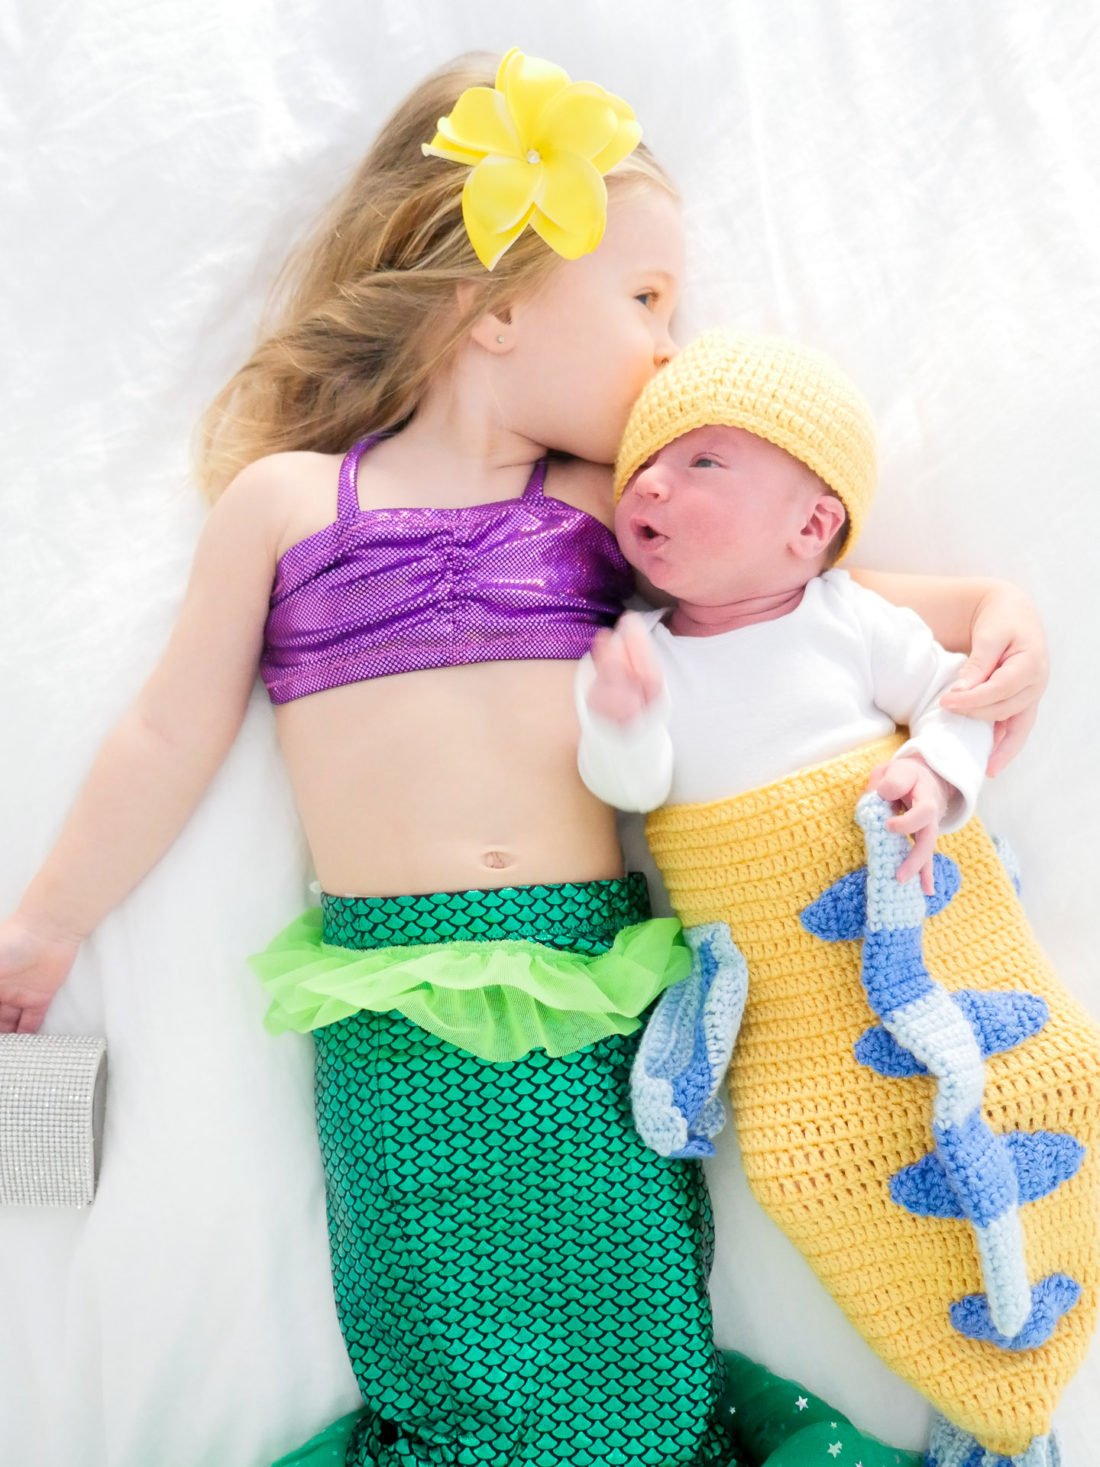 Marlowe Martino and Major Martino dressed as Ariel and Flounder from the Little Mermaid for Halloween